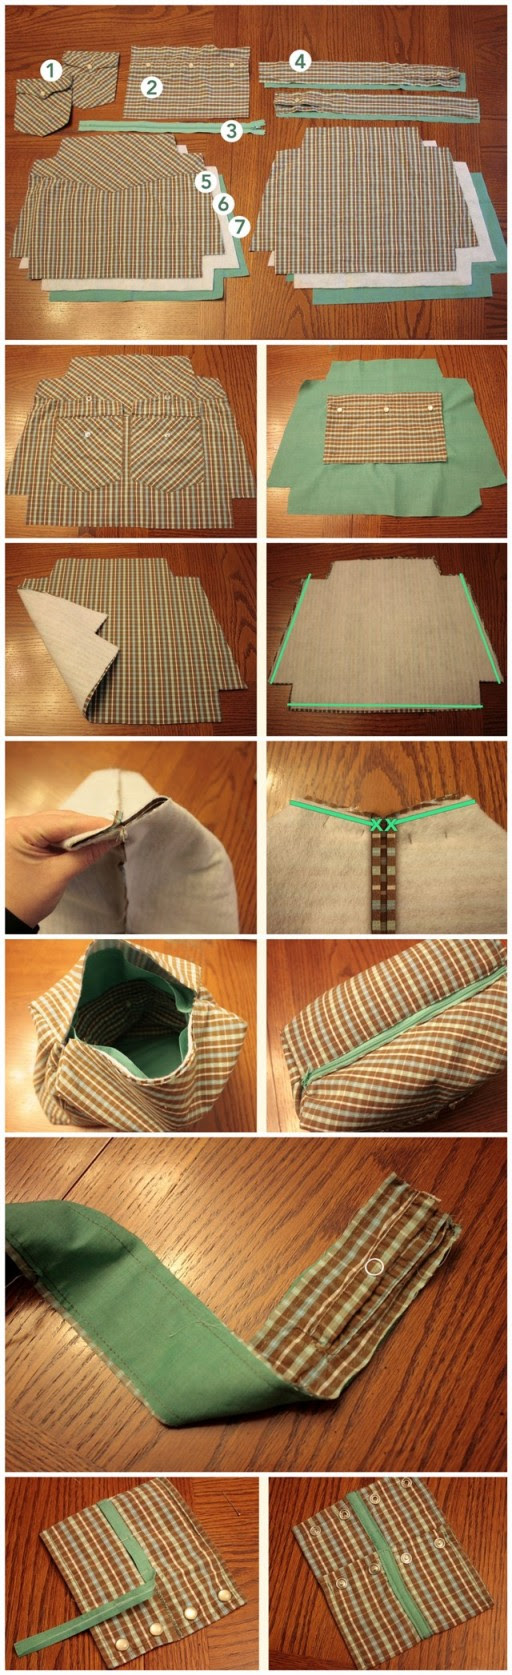 How to upcycle shirts into purses step by step DIY tutorial instructions 2